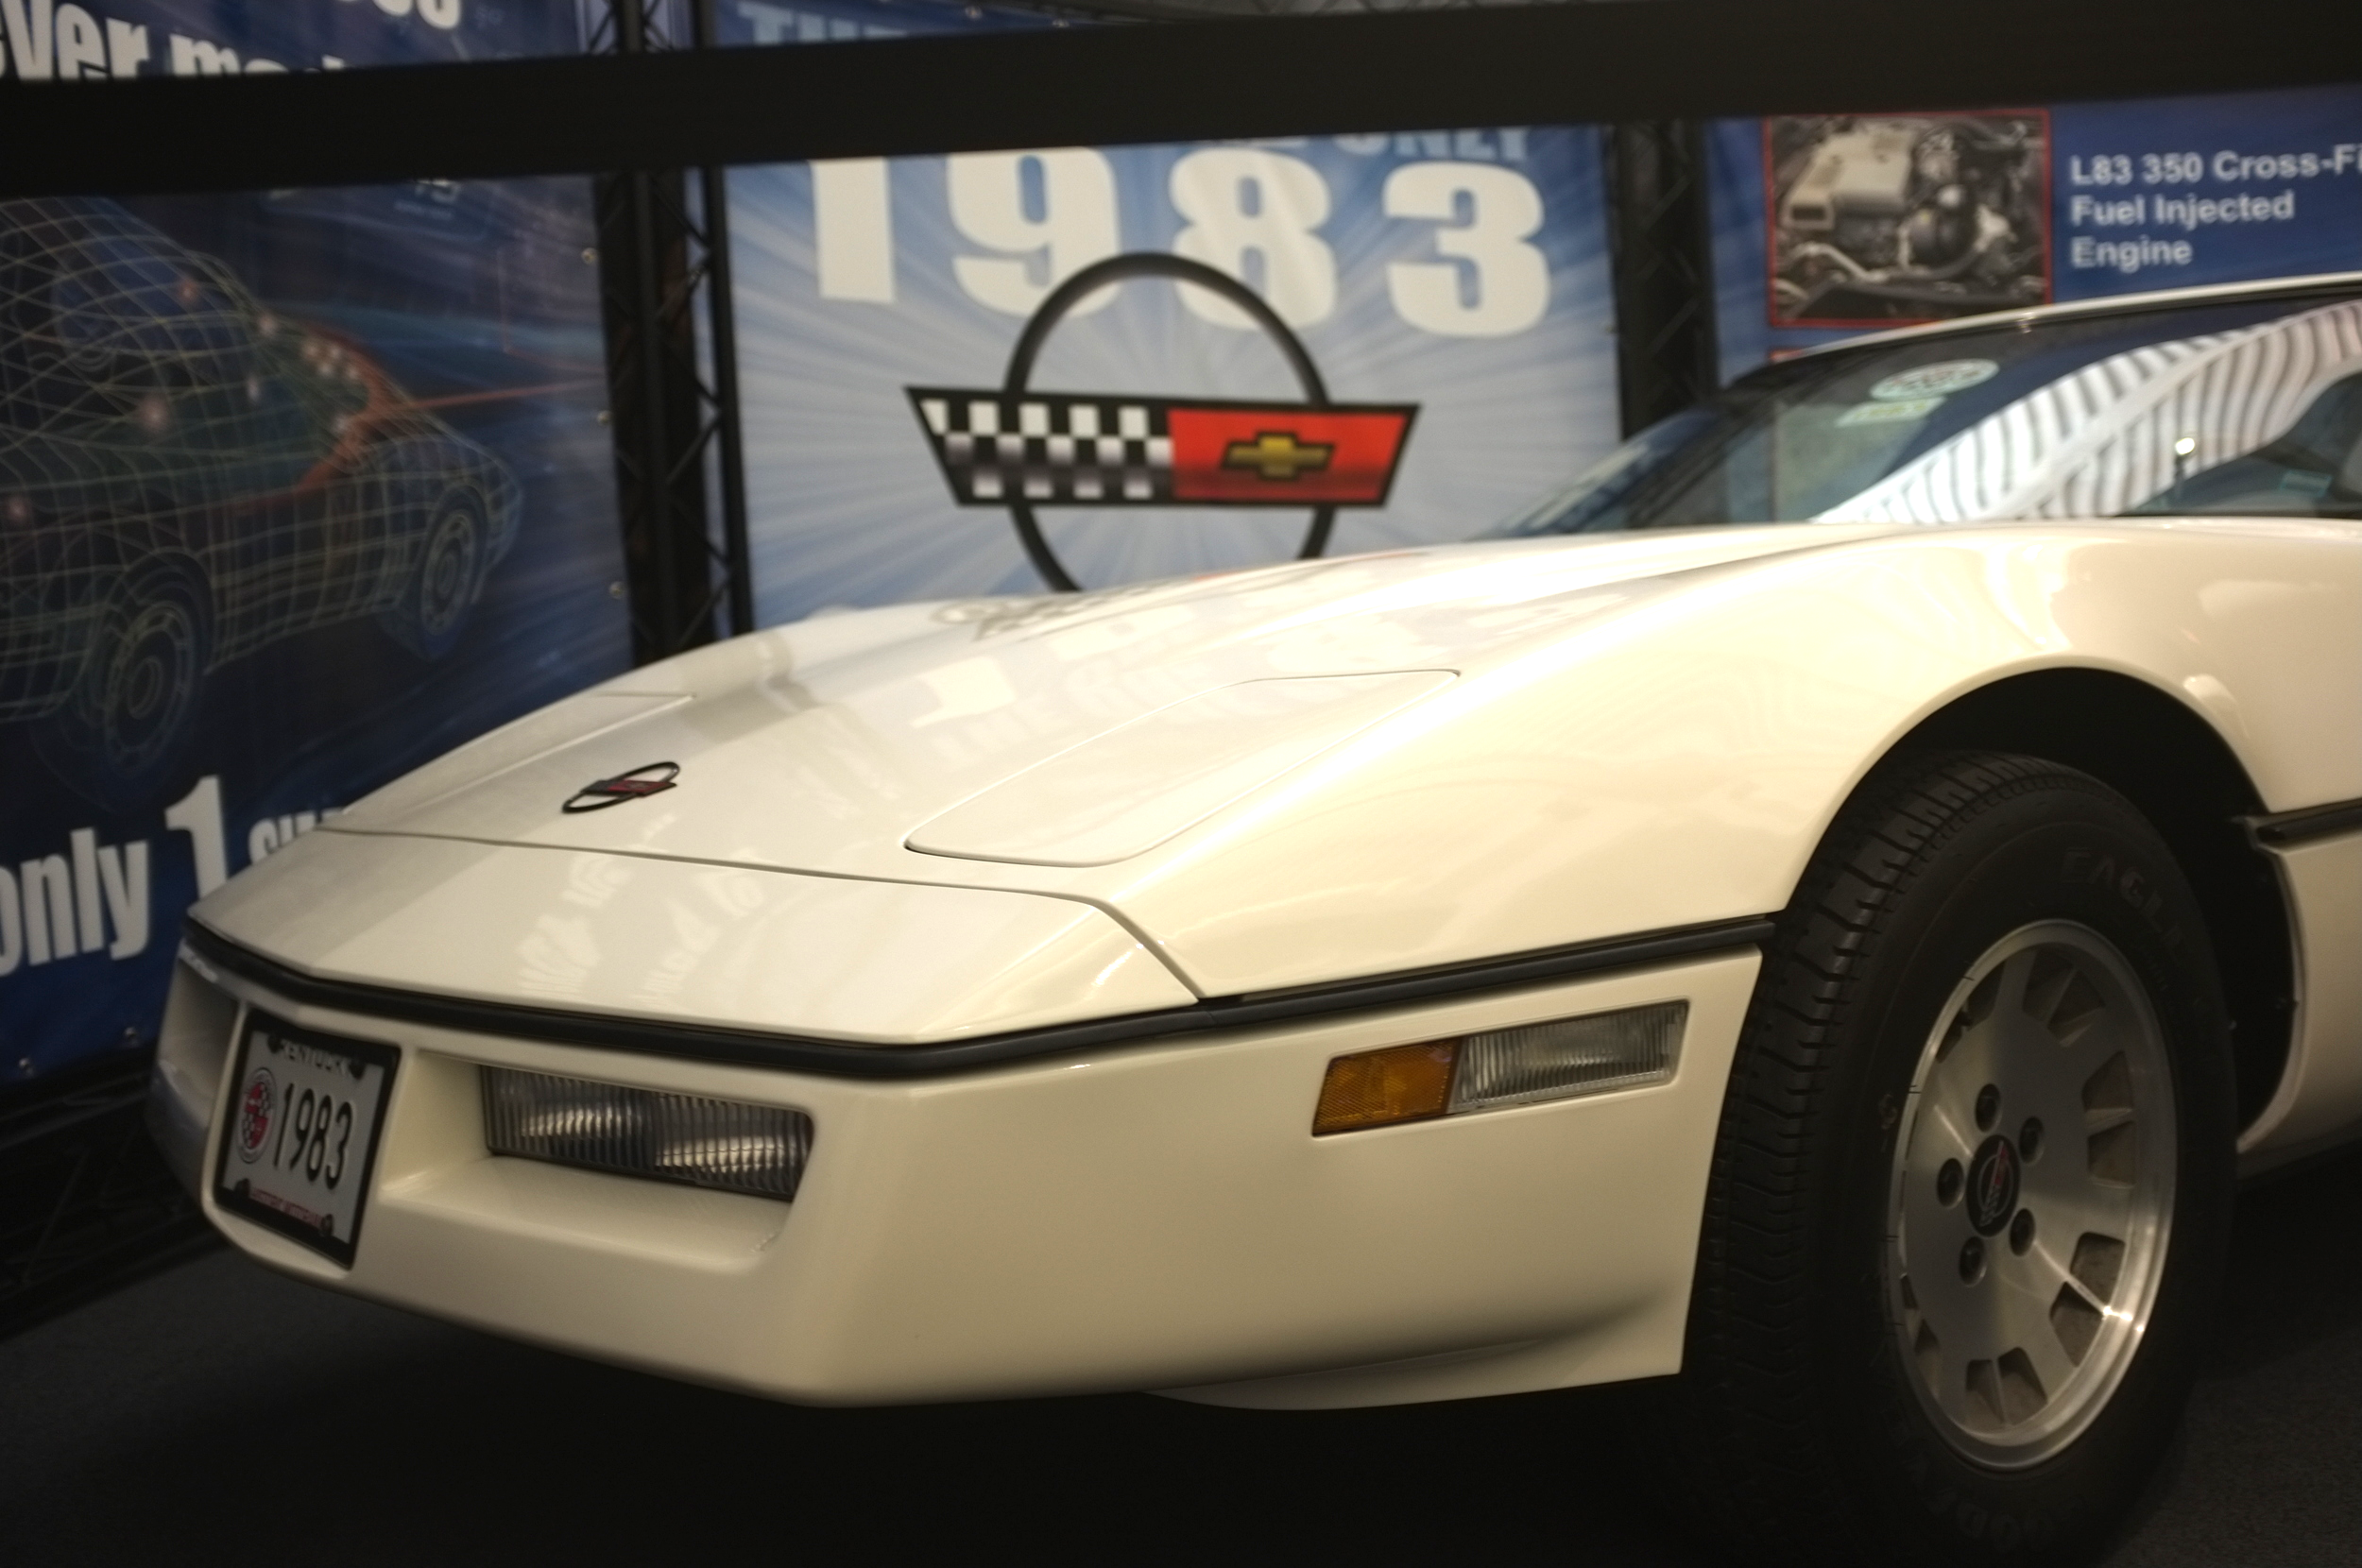 Sole survivor: the only example of the aborted 1983 Corvette production line